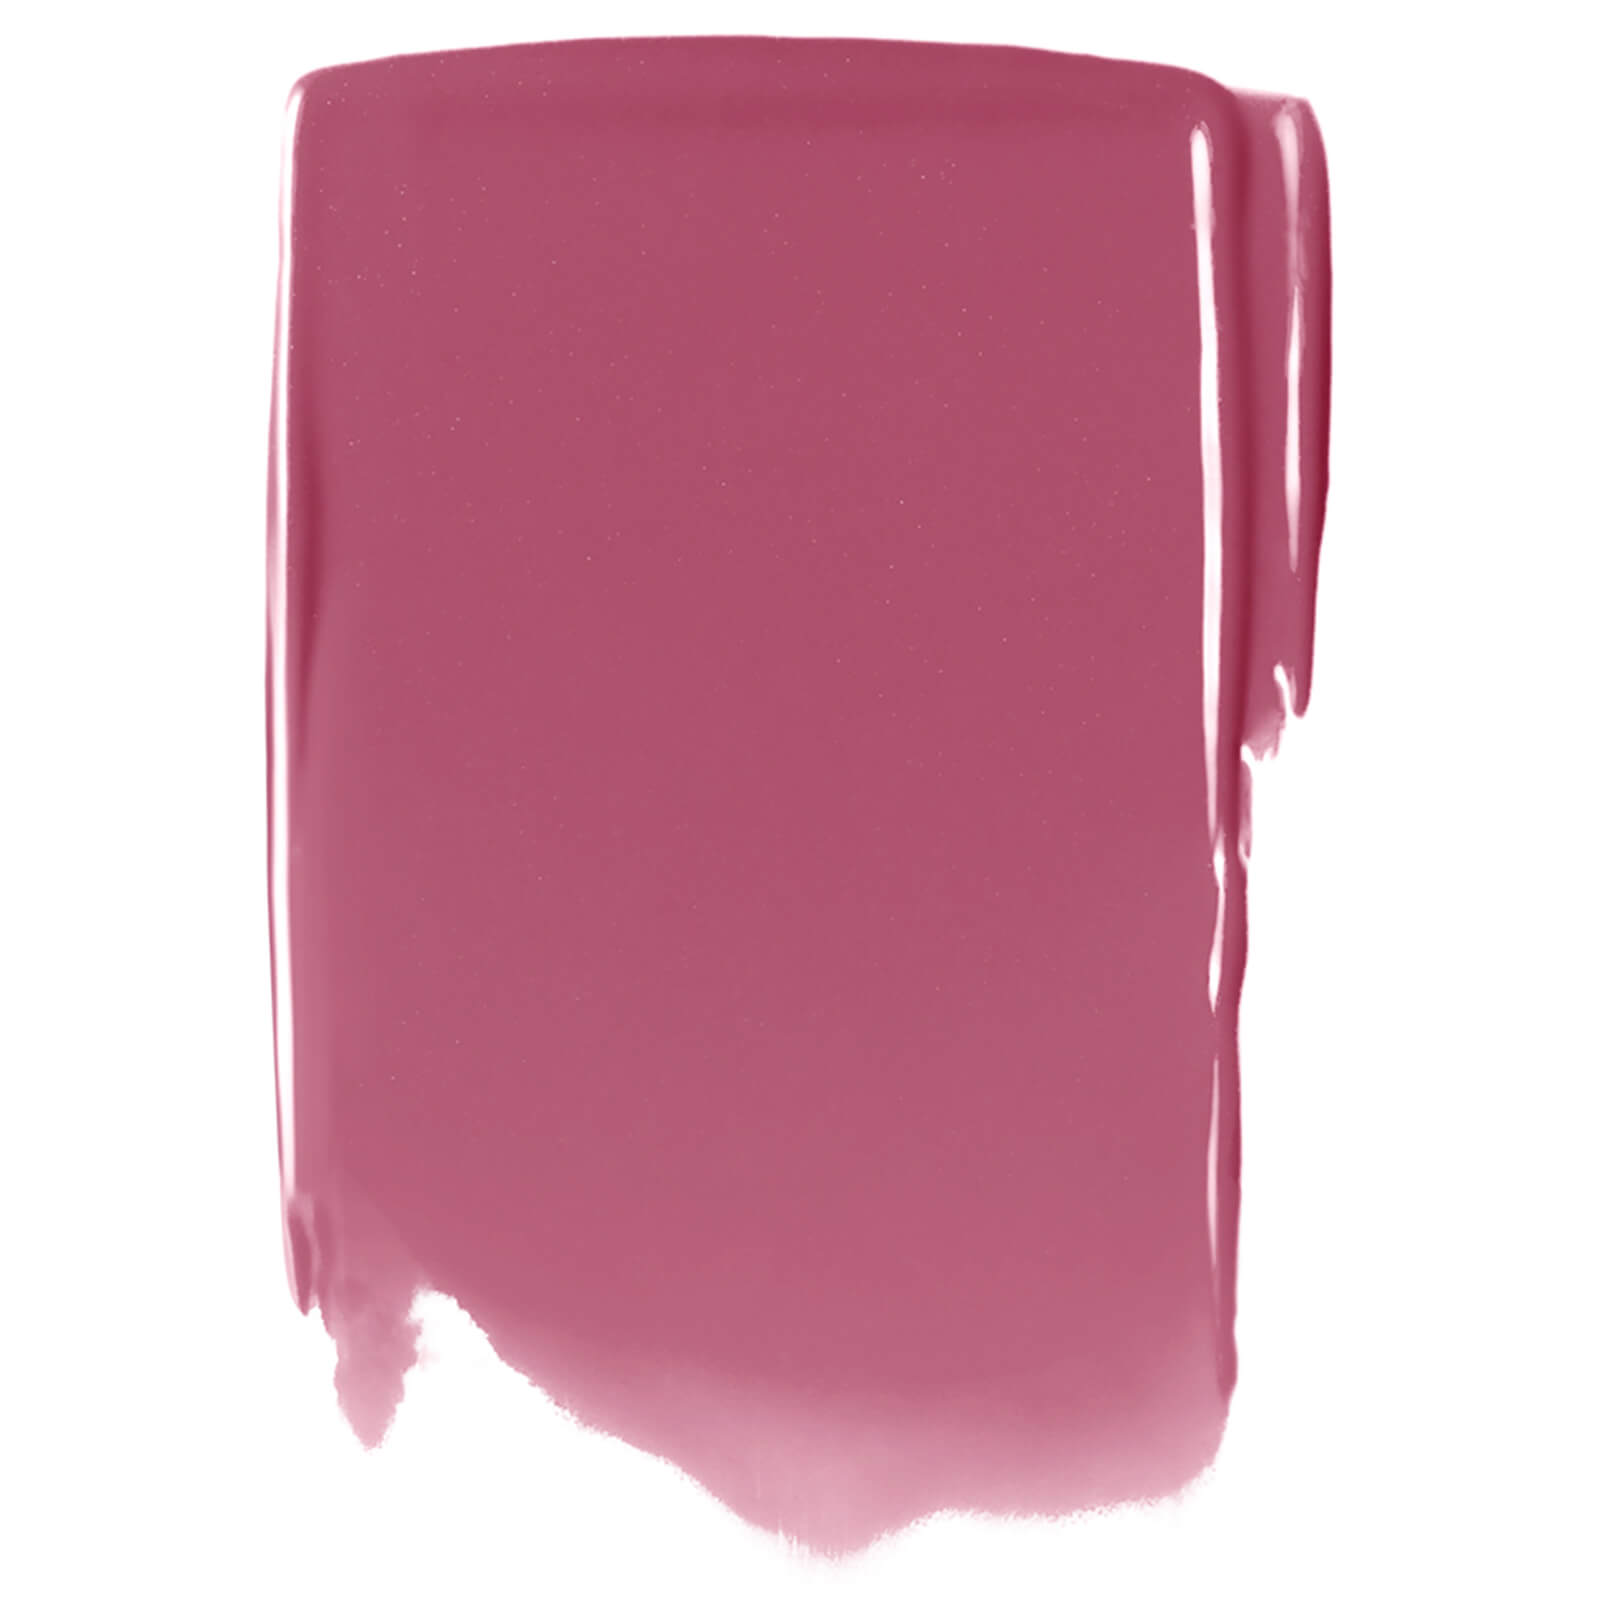 NARS Cosmetics Powermatte Lip Pigment 5.5ml (Various Shades) - Save The Queen